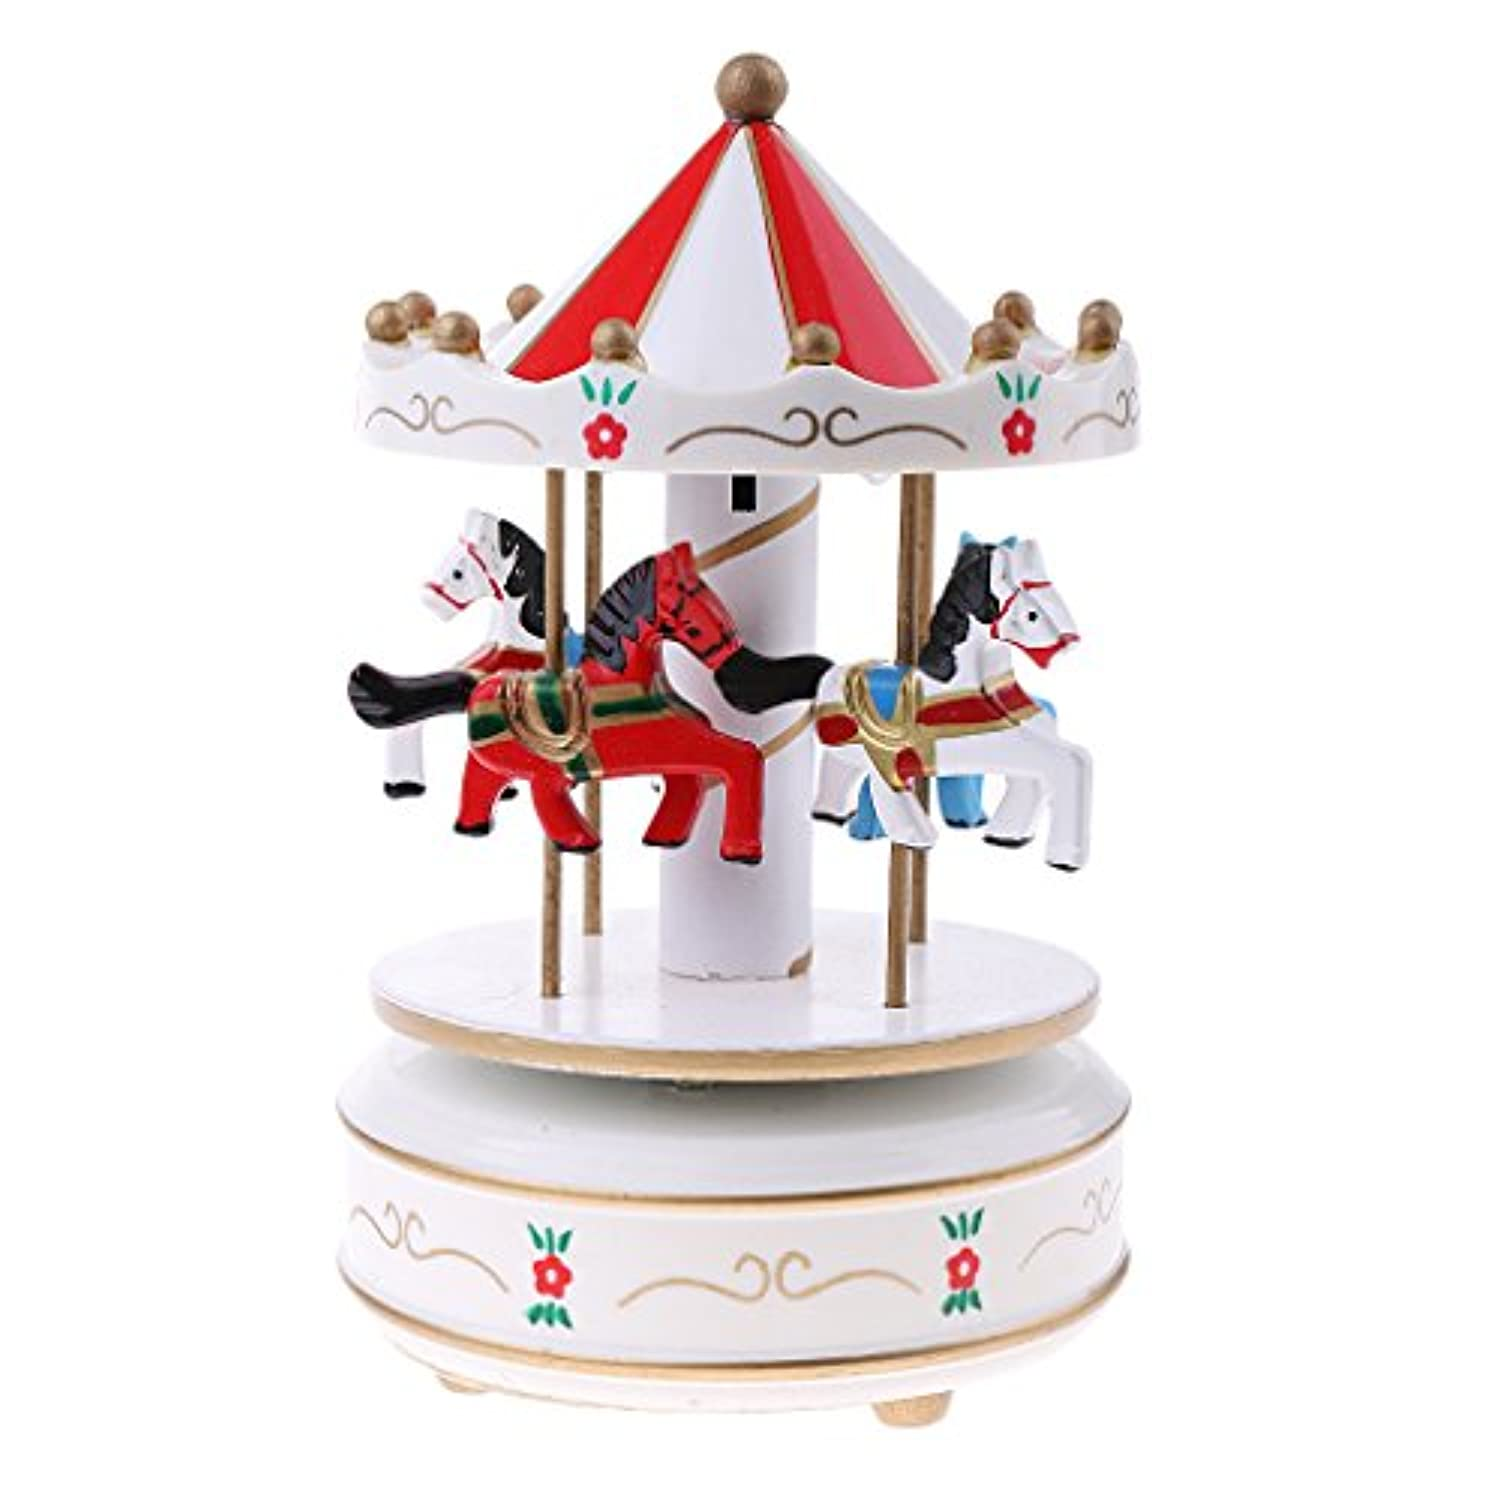 dovewill Carousel Rocking Horse音楽ボックスW LEDライトfor Kids子供ベッドルームの装飾 as described ホワイト c165dc2fad0267e5ad99d0ec8b177c33